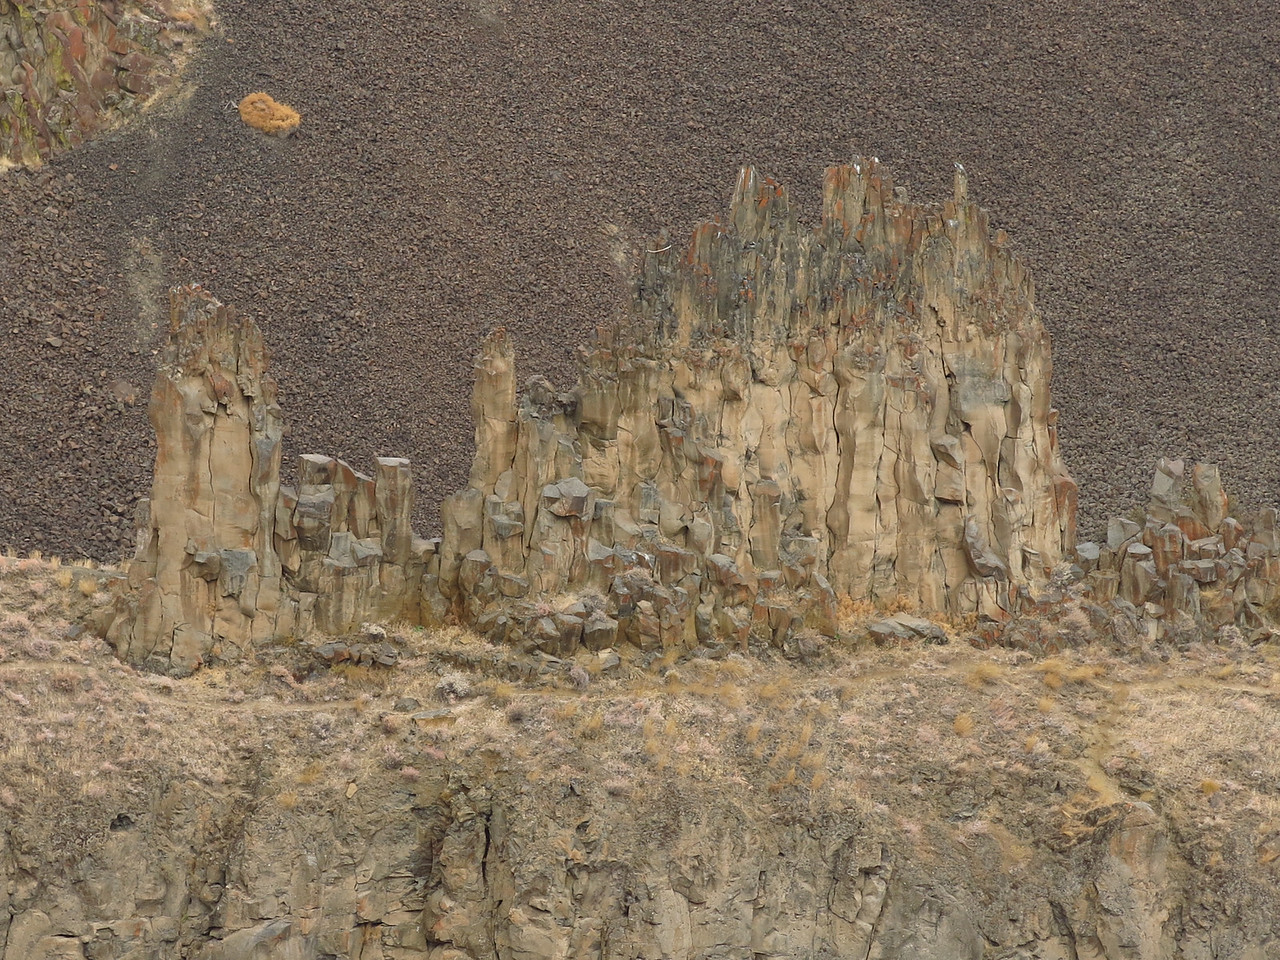 This is all that remains of one lava layer above the falls.  The shapes suggest columnar basalt.